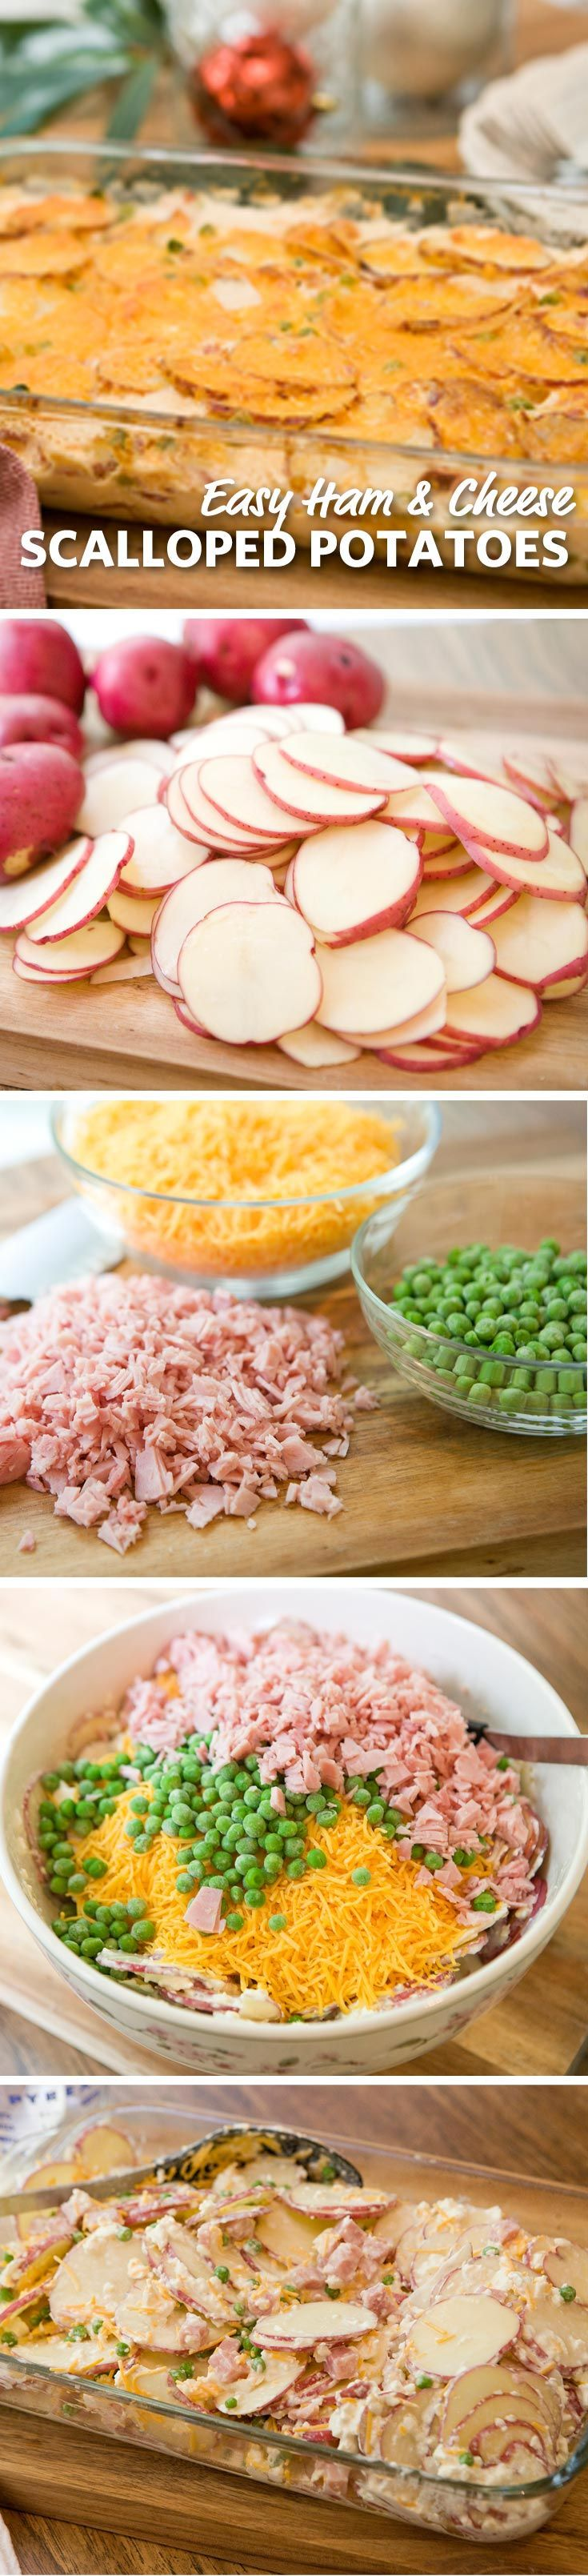 Easy Ham and Cheese Scalloped Potatoes: Scalloped potatoes with cheesy sauce, smoked ham and flavorful peas will help you win dinner. #FoodLion